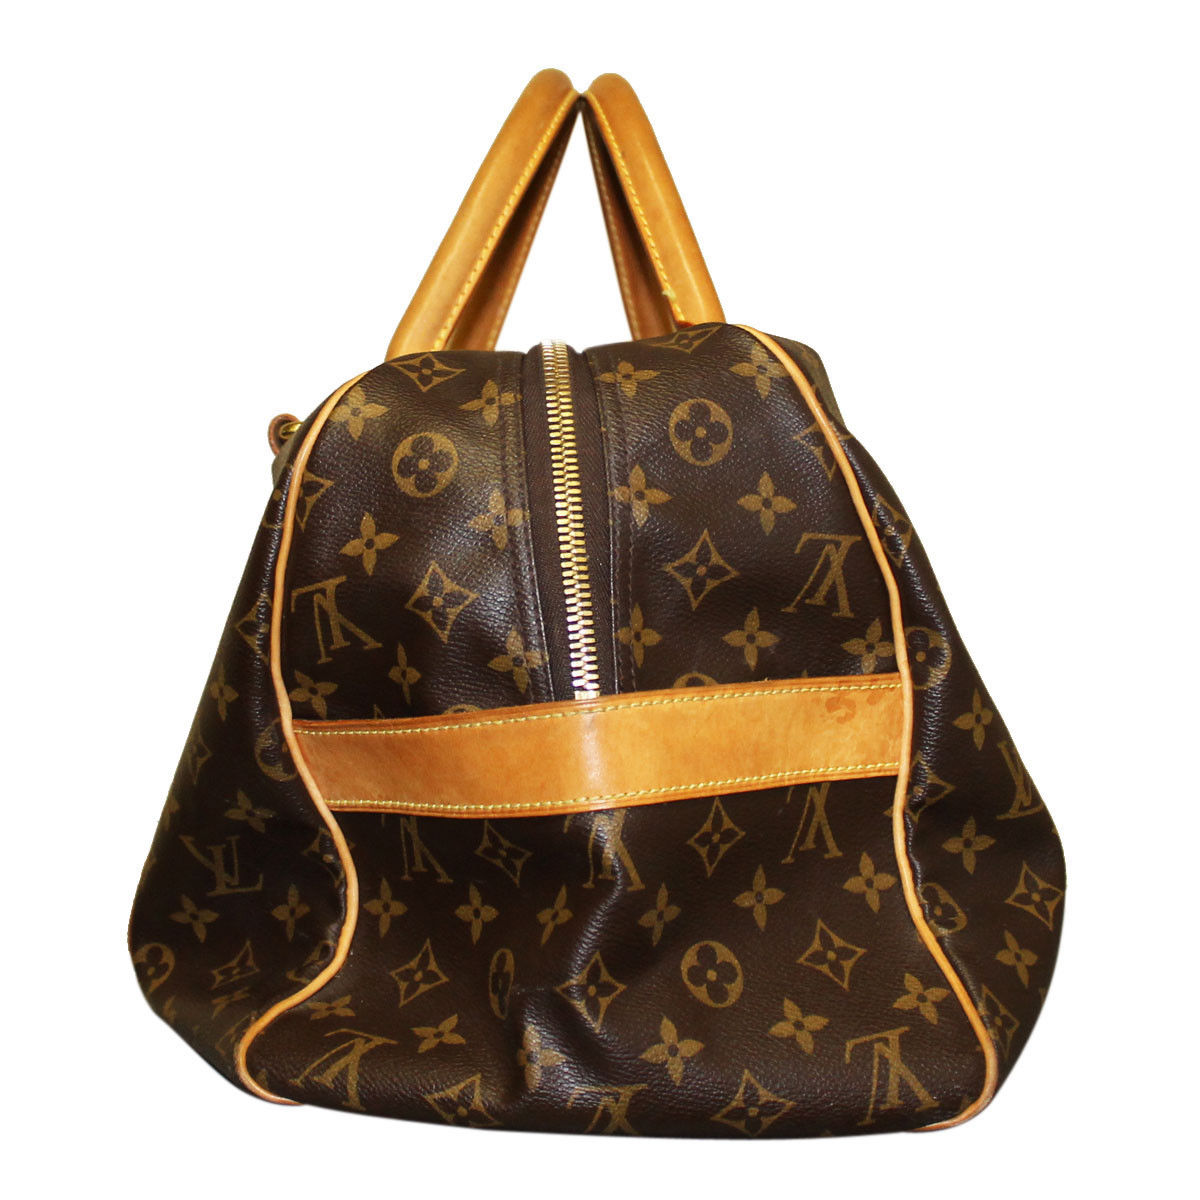 authentic louis vuitton carryall travel bag